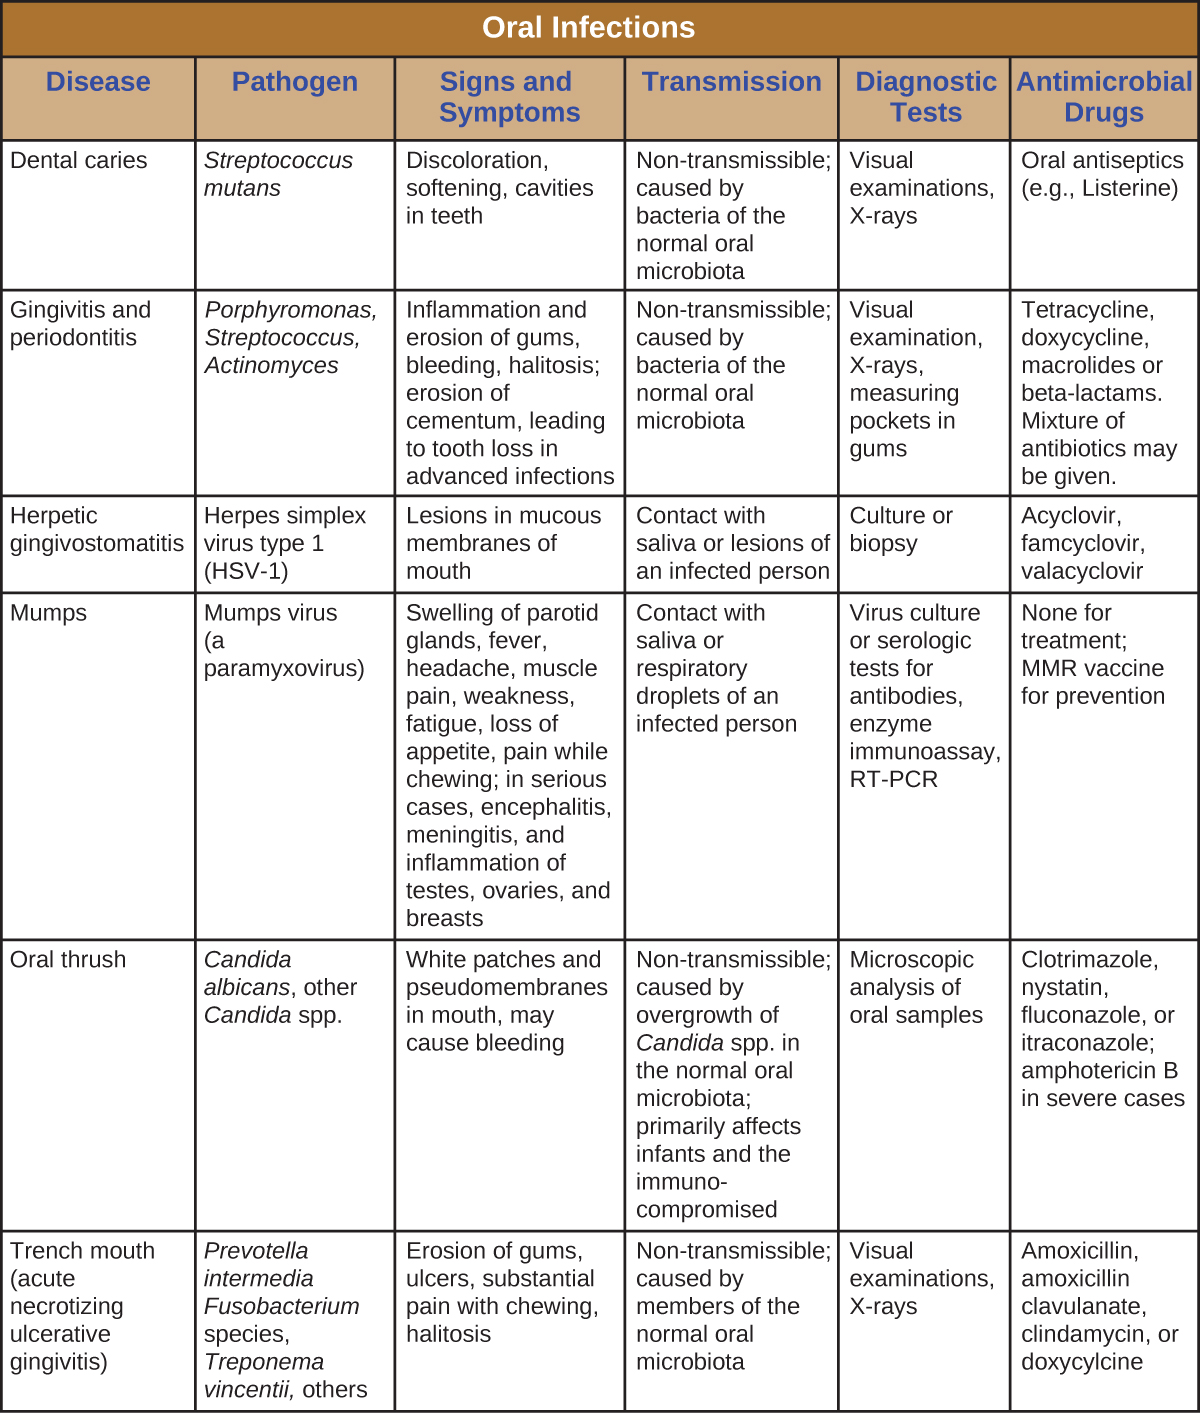 Table titled: Oral Infections. Columns: Disease, Pathogen, Signs and Symptoms, Transmission, Diagnostic Tests, Antimicrobial Drugs. Dental caries; Streptococcus mutans; Discoloration, softening, cavities in teeth; Non-transmissible; caused by bacteria of the normal oral microbiota; Visual examinations, X-rays Oral antiseptics (e.g., Listerine). Gingivitis and periodontitis; Porphyromonas, Streptococcus, Actinomyces; Inflammation and erosion of gums, bleeding, halitosis; erosion of cementum leading to tooth loss in advanced infections; Non-transmissible; caused by bacteria of the normal oral microbiota; Visual examination, X-rays, measuring pockets in gums; Tetracycline, doxycycline, macrolides or beta-lactams. Mixture of antibiotics may be given. Herpetic gingivostomatitis; Herpes simplex virus type 1 (HSV-1); Lesions in mucous membranes of mouth Contact with saliva or lesions of an infected person Culture or biopsy; Acyclovir, famcyclovir, valacyclovir. Mumps; Mumps virus (a paramyxovirus); Swelling of parotid glands, fever, headache, muscle pain, weakness, fatigue, loss of appetite, pain while chewing; in serious cases, encephalitis, meningitis, and inflammation of testes, ovaries, and breasts; Contact with saliva or respiratory droplets of an infected person; Virus culture or serologic tests for antibodies, enzyme immunoassay, RT-PCR; None for treatment; MMR vaccine for prevention. Oral thrush; Candida albicans, other Candida spp.;  White patches and pseudomembranes in mouth, may cause bleeding; Nontransmissible; caused by overgrowth of Candida spp. in the normal oral microbiota; primarily affects infants and the immunocompromised. Microscopic analysis of oral samples; Clotrimazole, nystatin, fluconazole, or itraconazole; amphotericin B in severe cases. Trench mouth (acute necrotizing ulcerative gingivitis); Prevotella intermedia Fusobacterium species, Treponema vincentii, others; Erosion of gums, ulcers, substantial pain with chewing, halitosis; Nontransmissible; caused by members of the normal oral microbiota; Visual examinations, X-rays; Amoxicillin, amoxicillin clavulanate, clindamycin, or doxycycline.